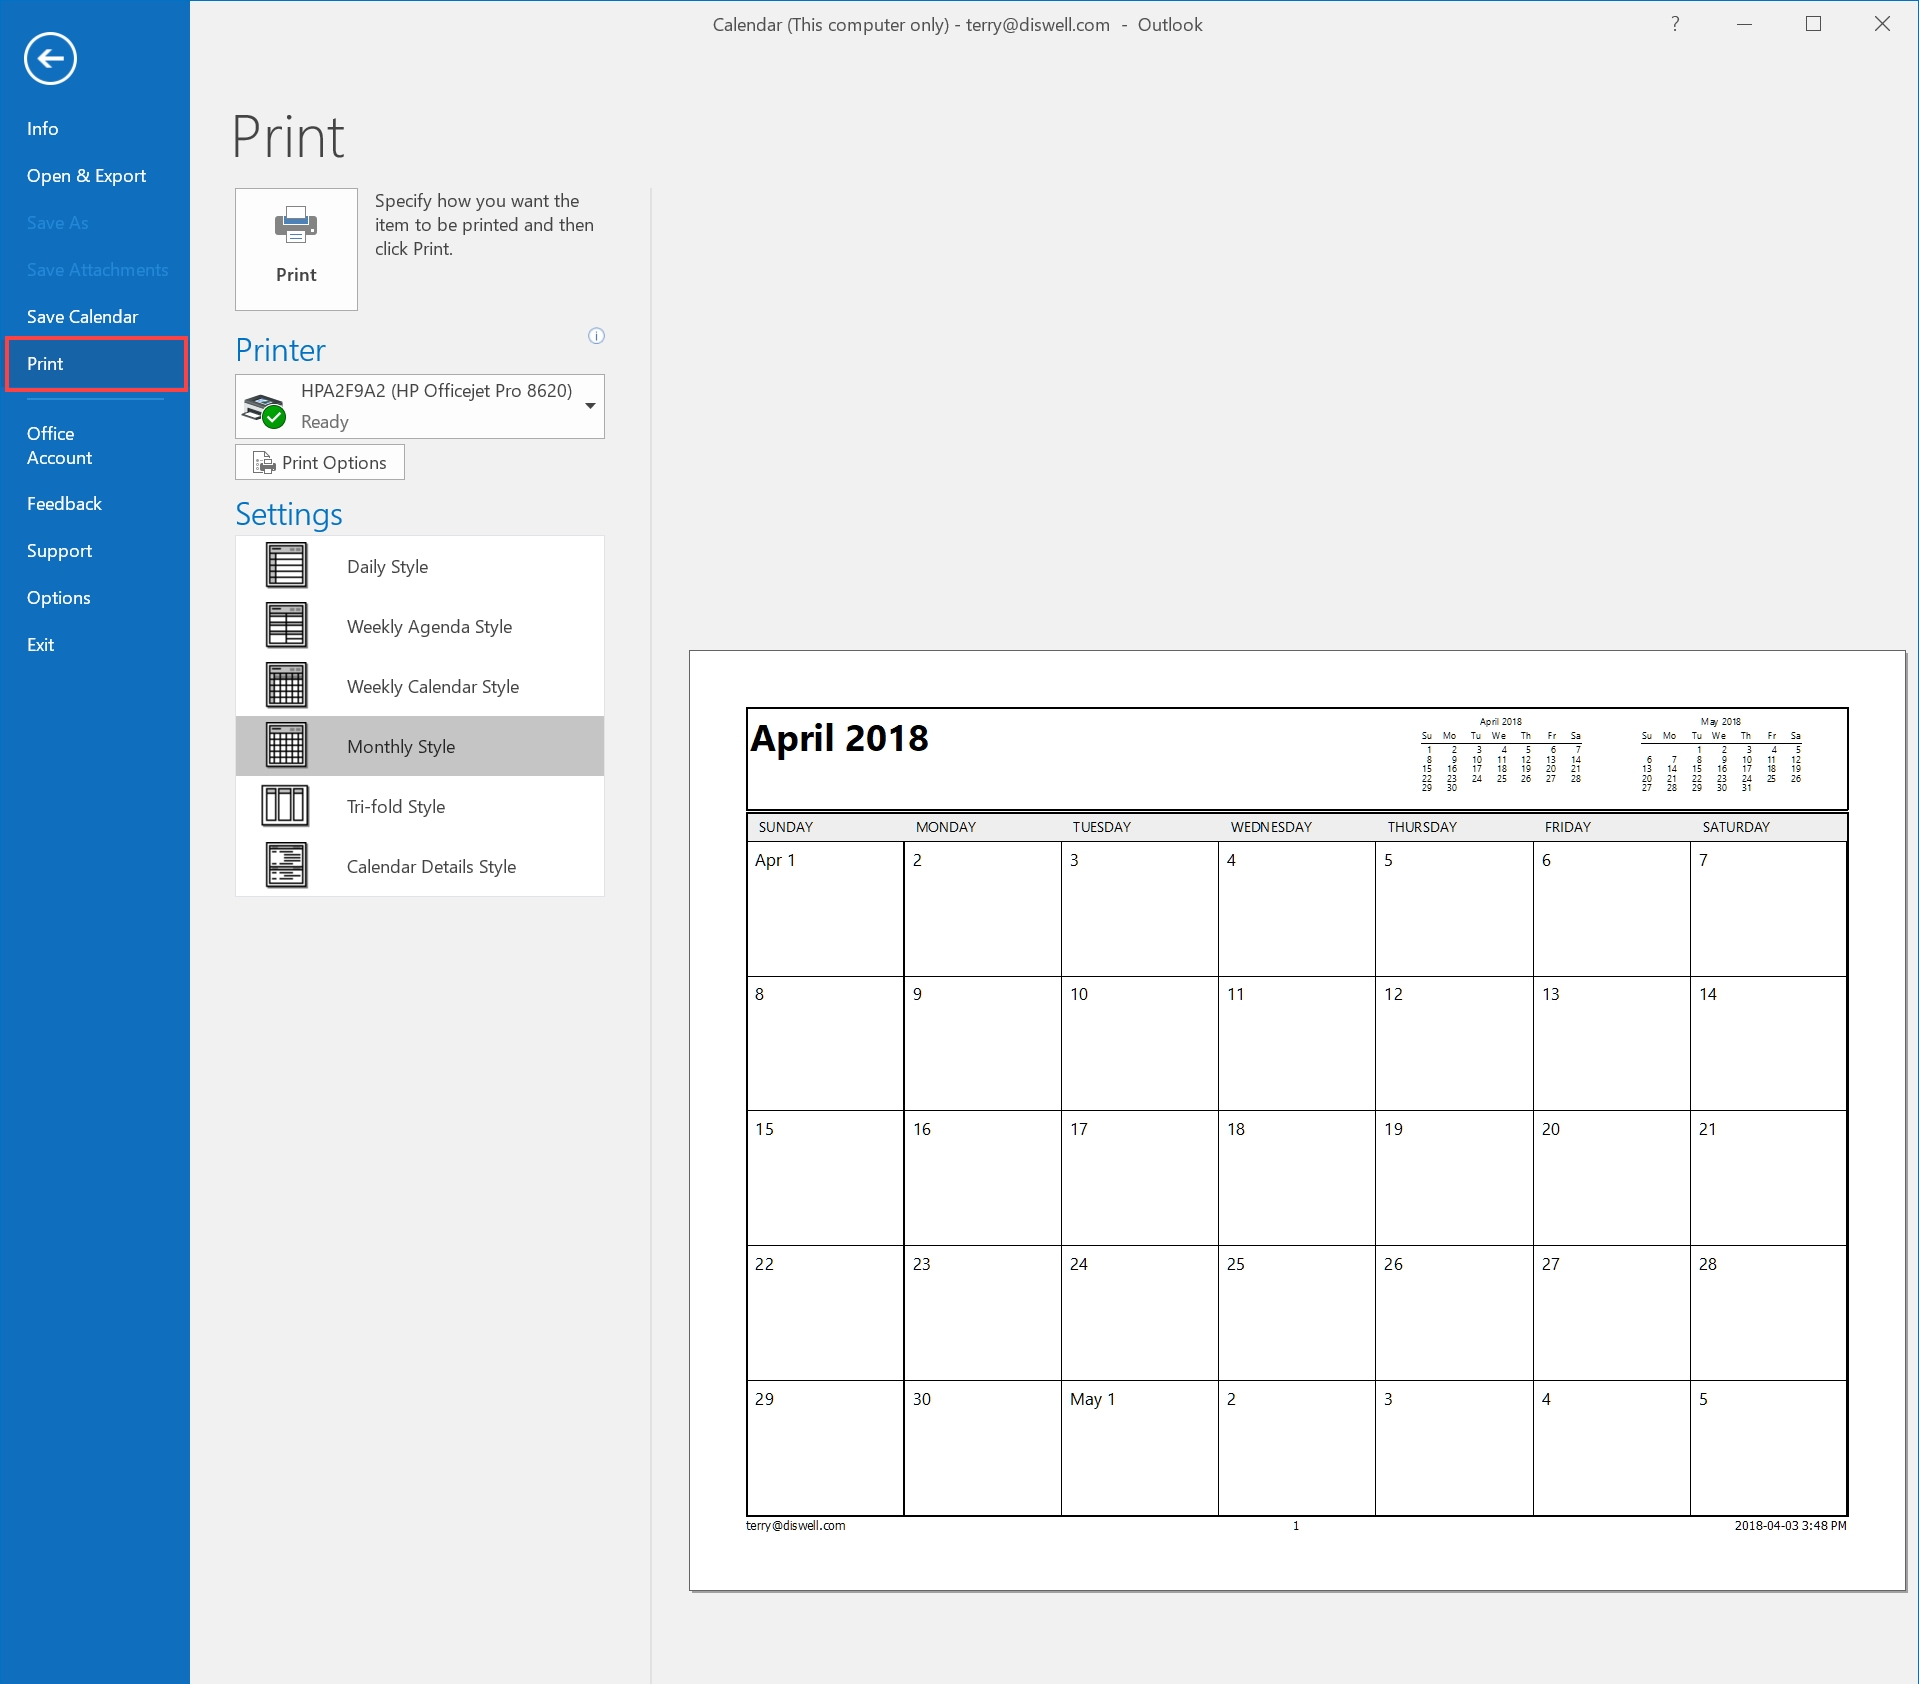 How To Email Or Print Your Calendar In Outlook 2016 - Hostpapa